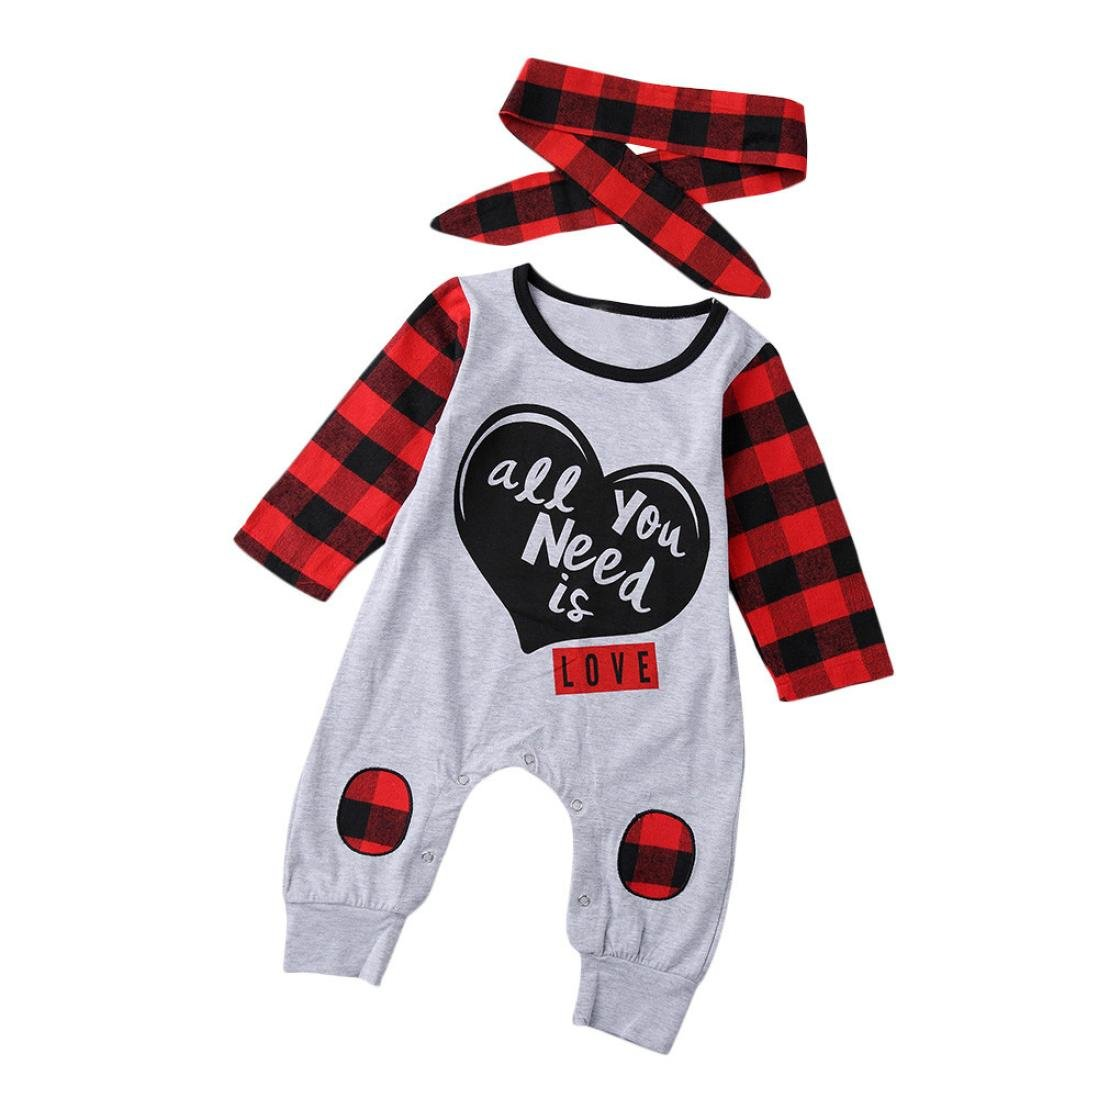 Ropa Bebe , Fossen ALL YOU NEED IS LOVE Cuadros Mono Pijamas de Mangas largas Peleles para Recien nacido Nina Nino